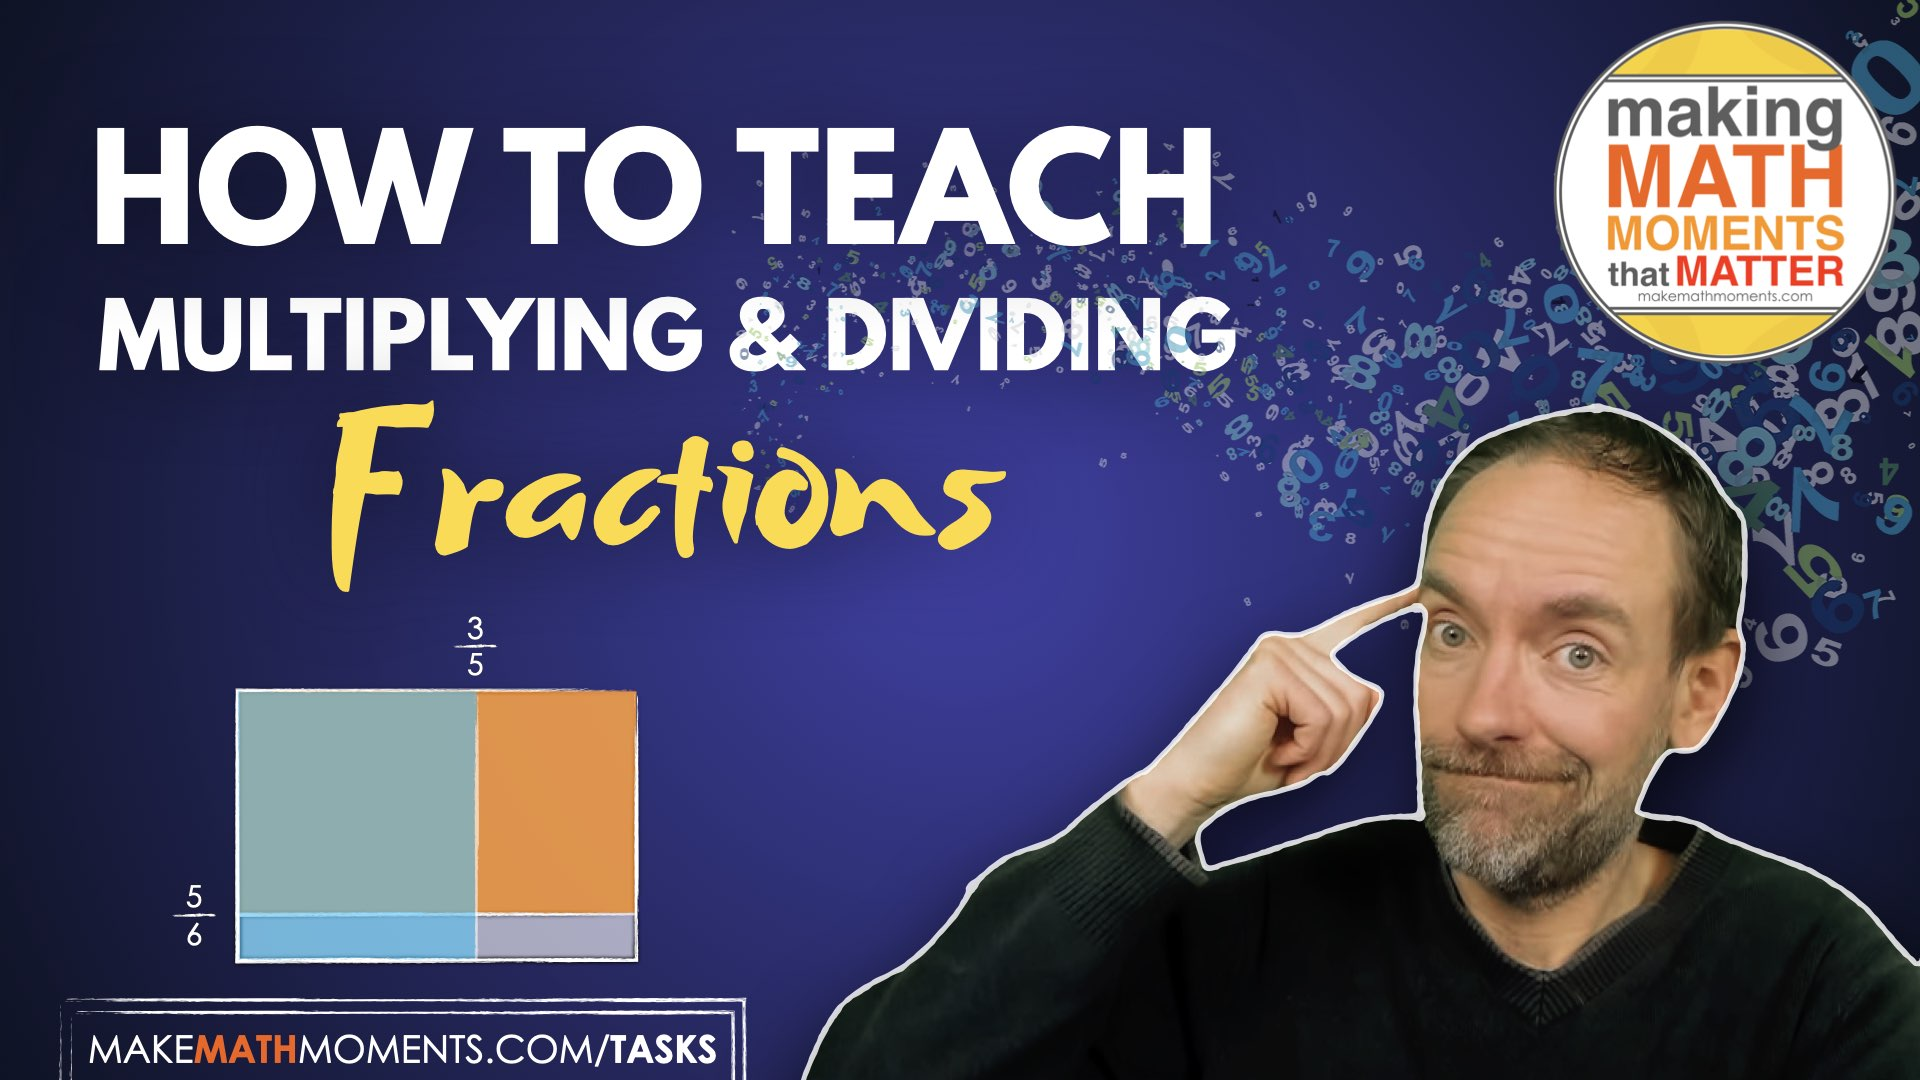 How To Teach Multiplying and Dividing Fractions